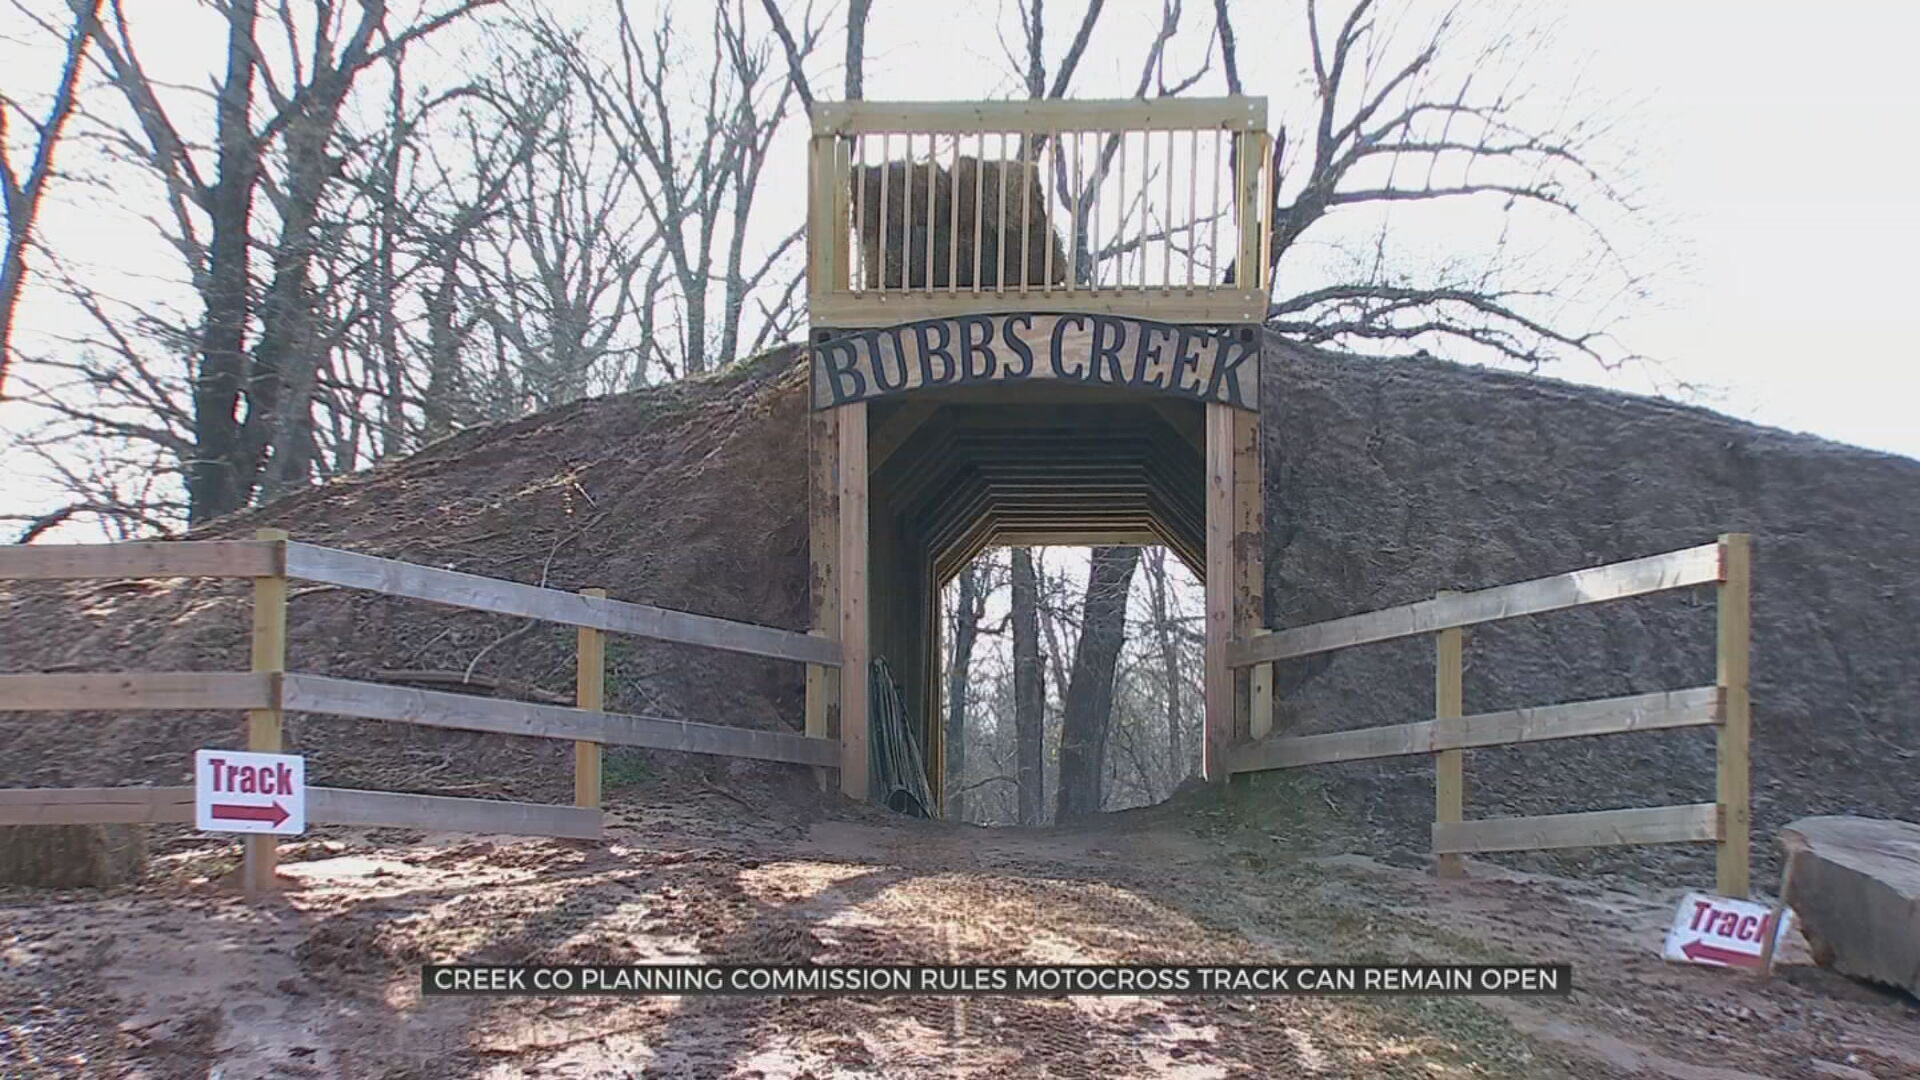 Creek Co. Family-Run Motocross Track To Remain Open After Neighbor Complaints